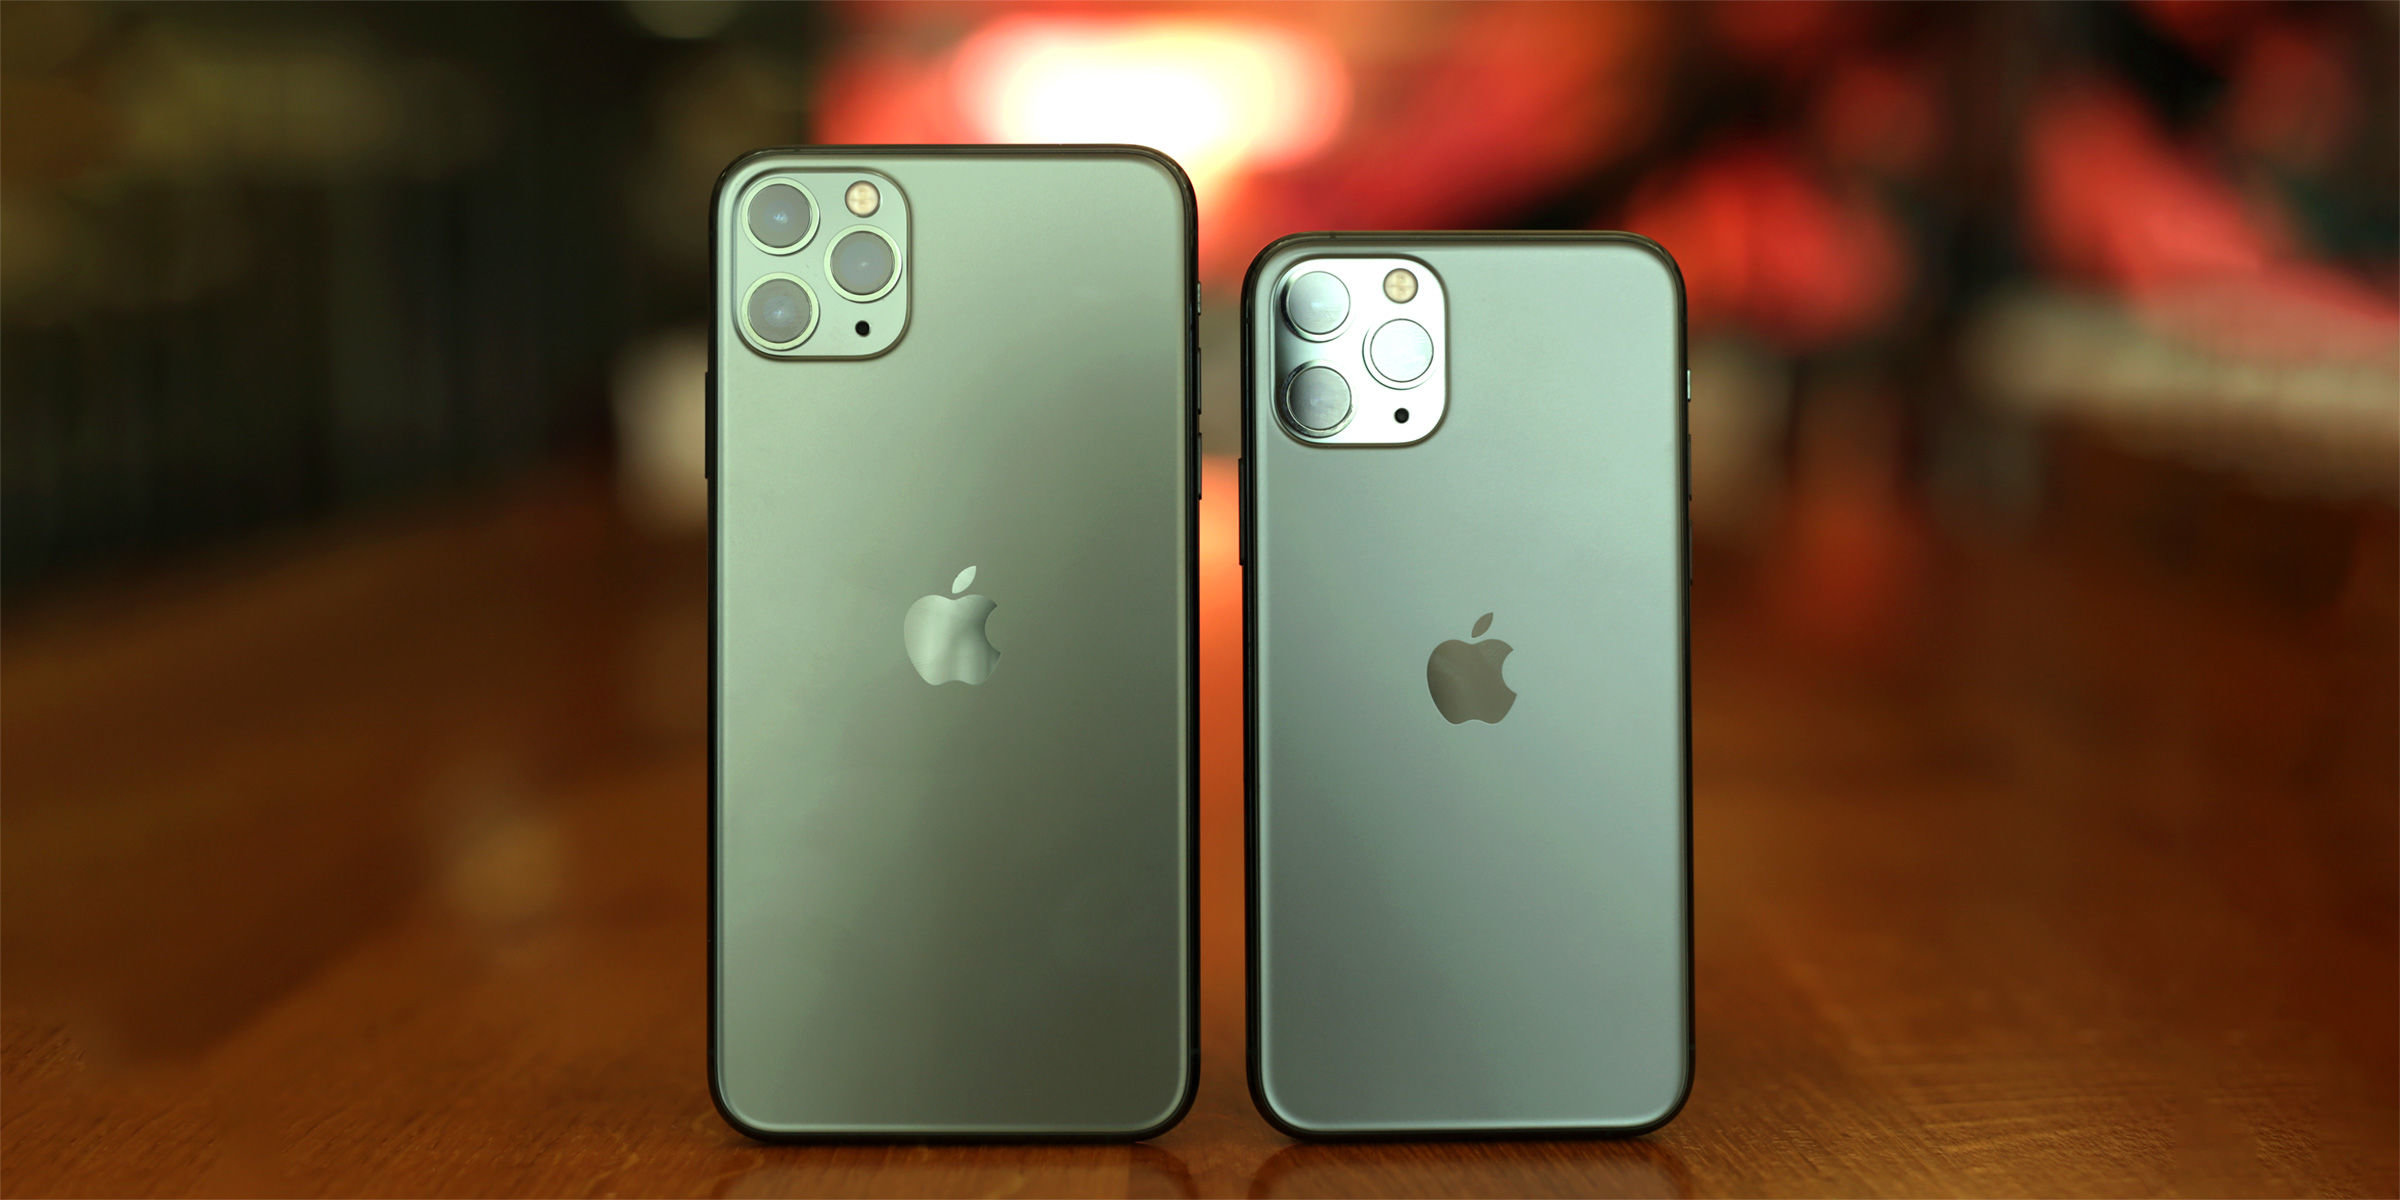 Apple iPhone 12 Release Date Updates 5G Model will be Delayed due to Coronavirus Pandemic